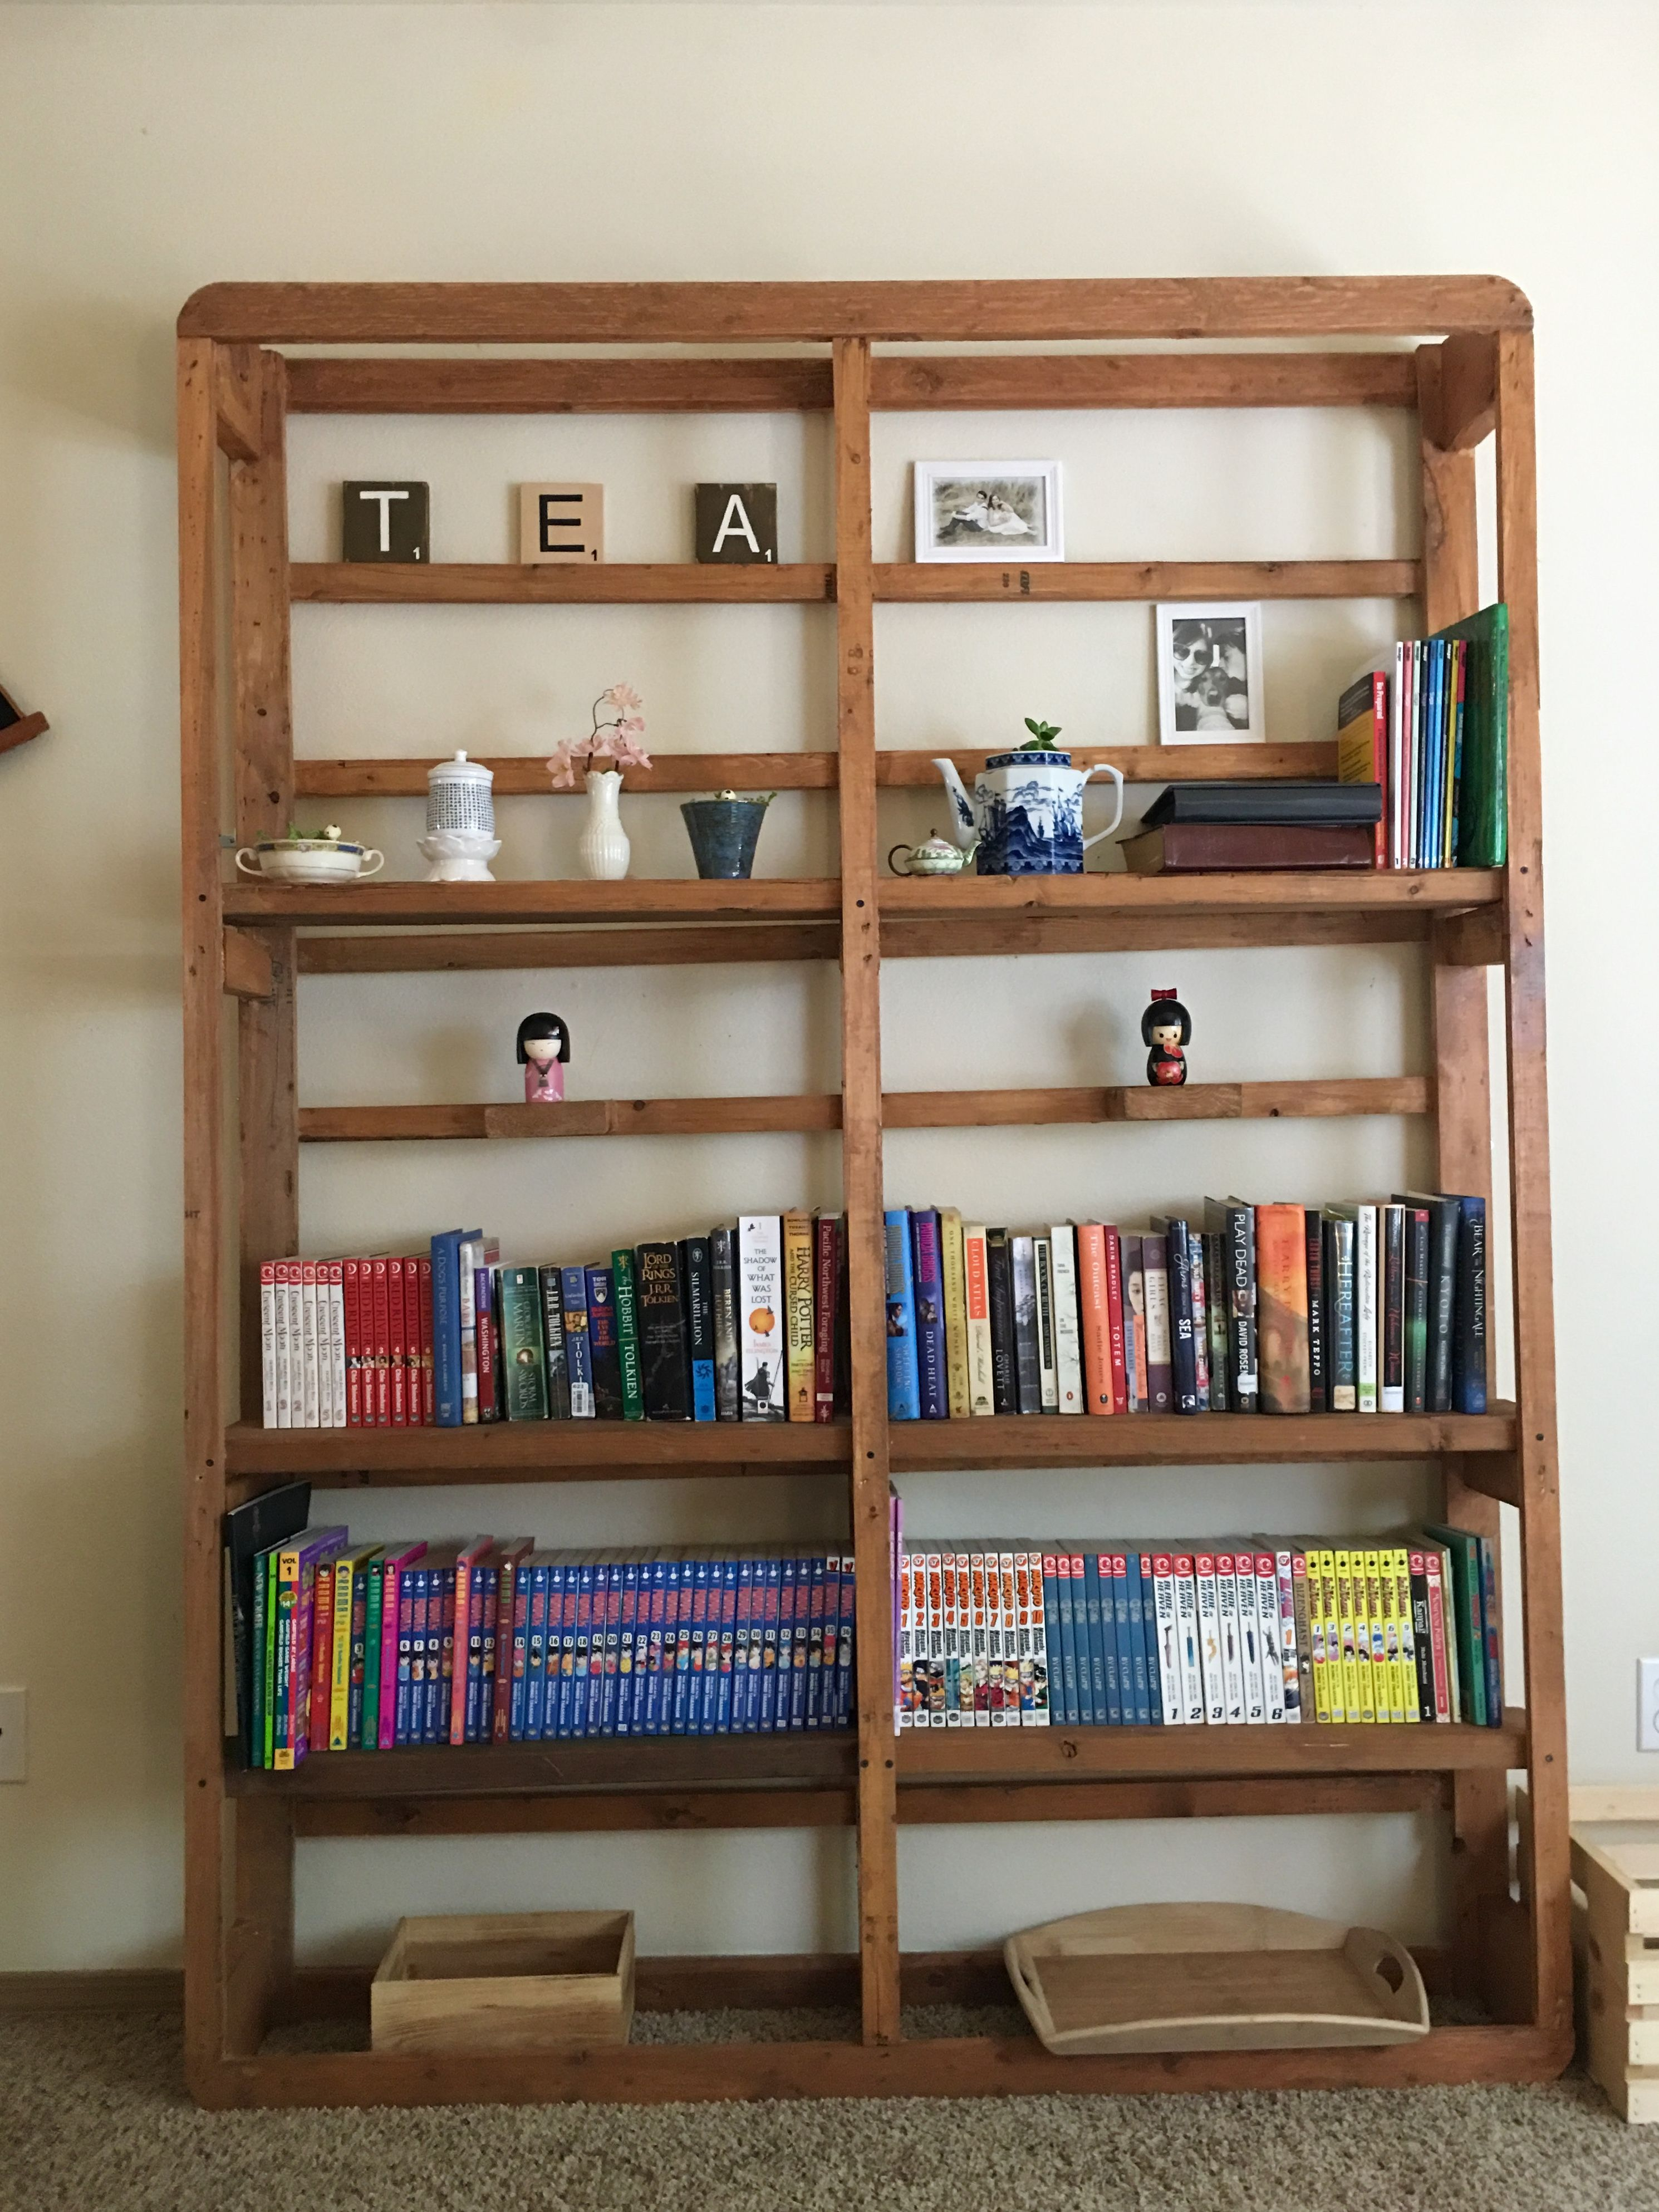 Diy shelves made from old box spring. Shabby chic, country